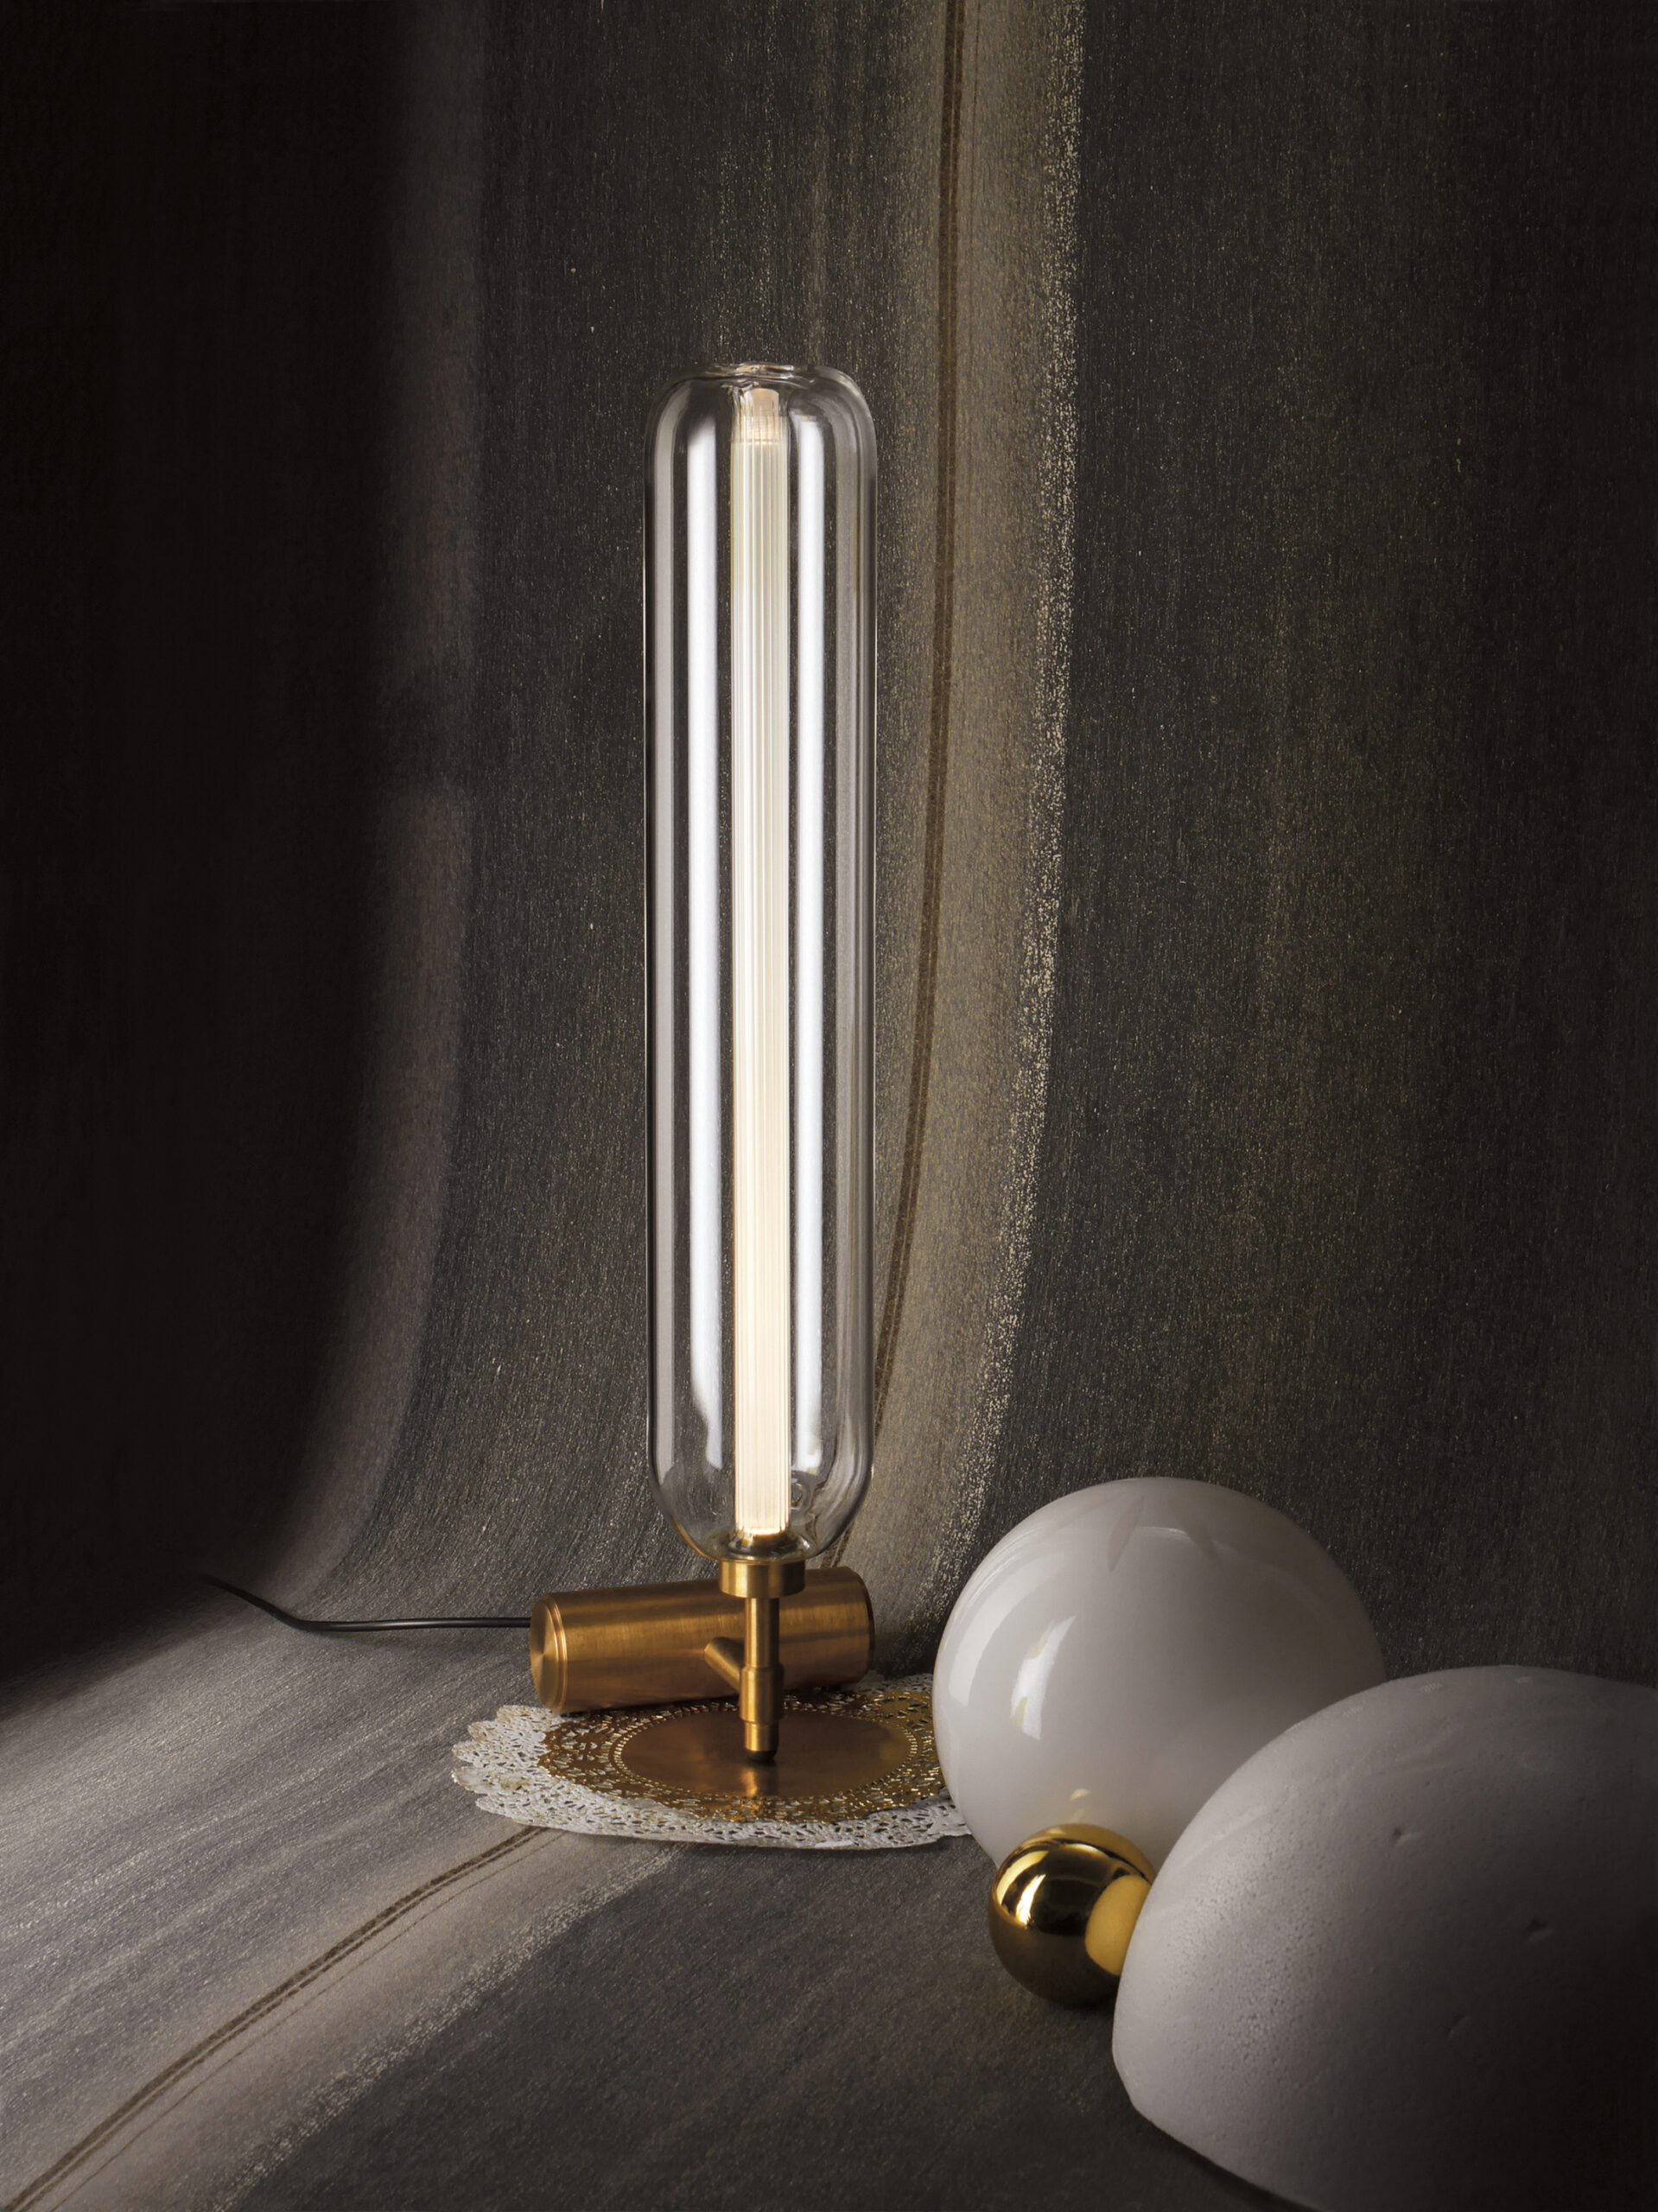 Scintilla brass & glass lamp designed by Pietro Russo for Dante - Goods and Bads